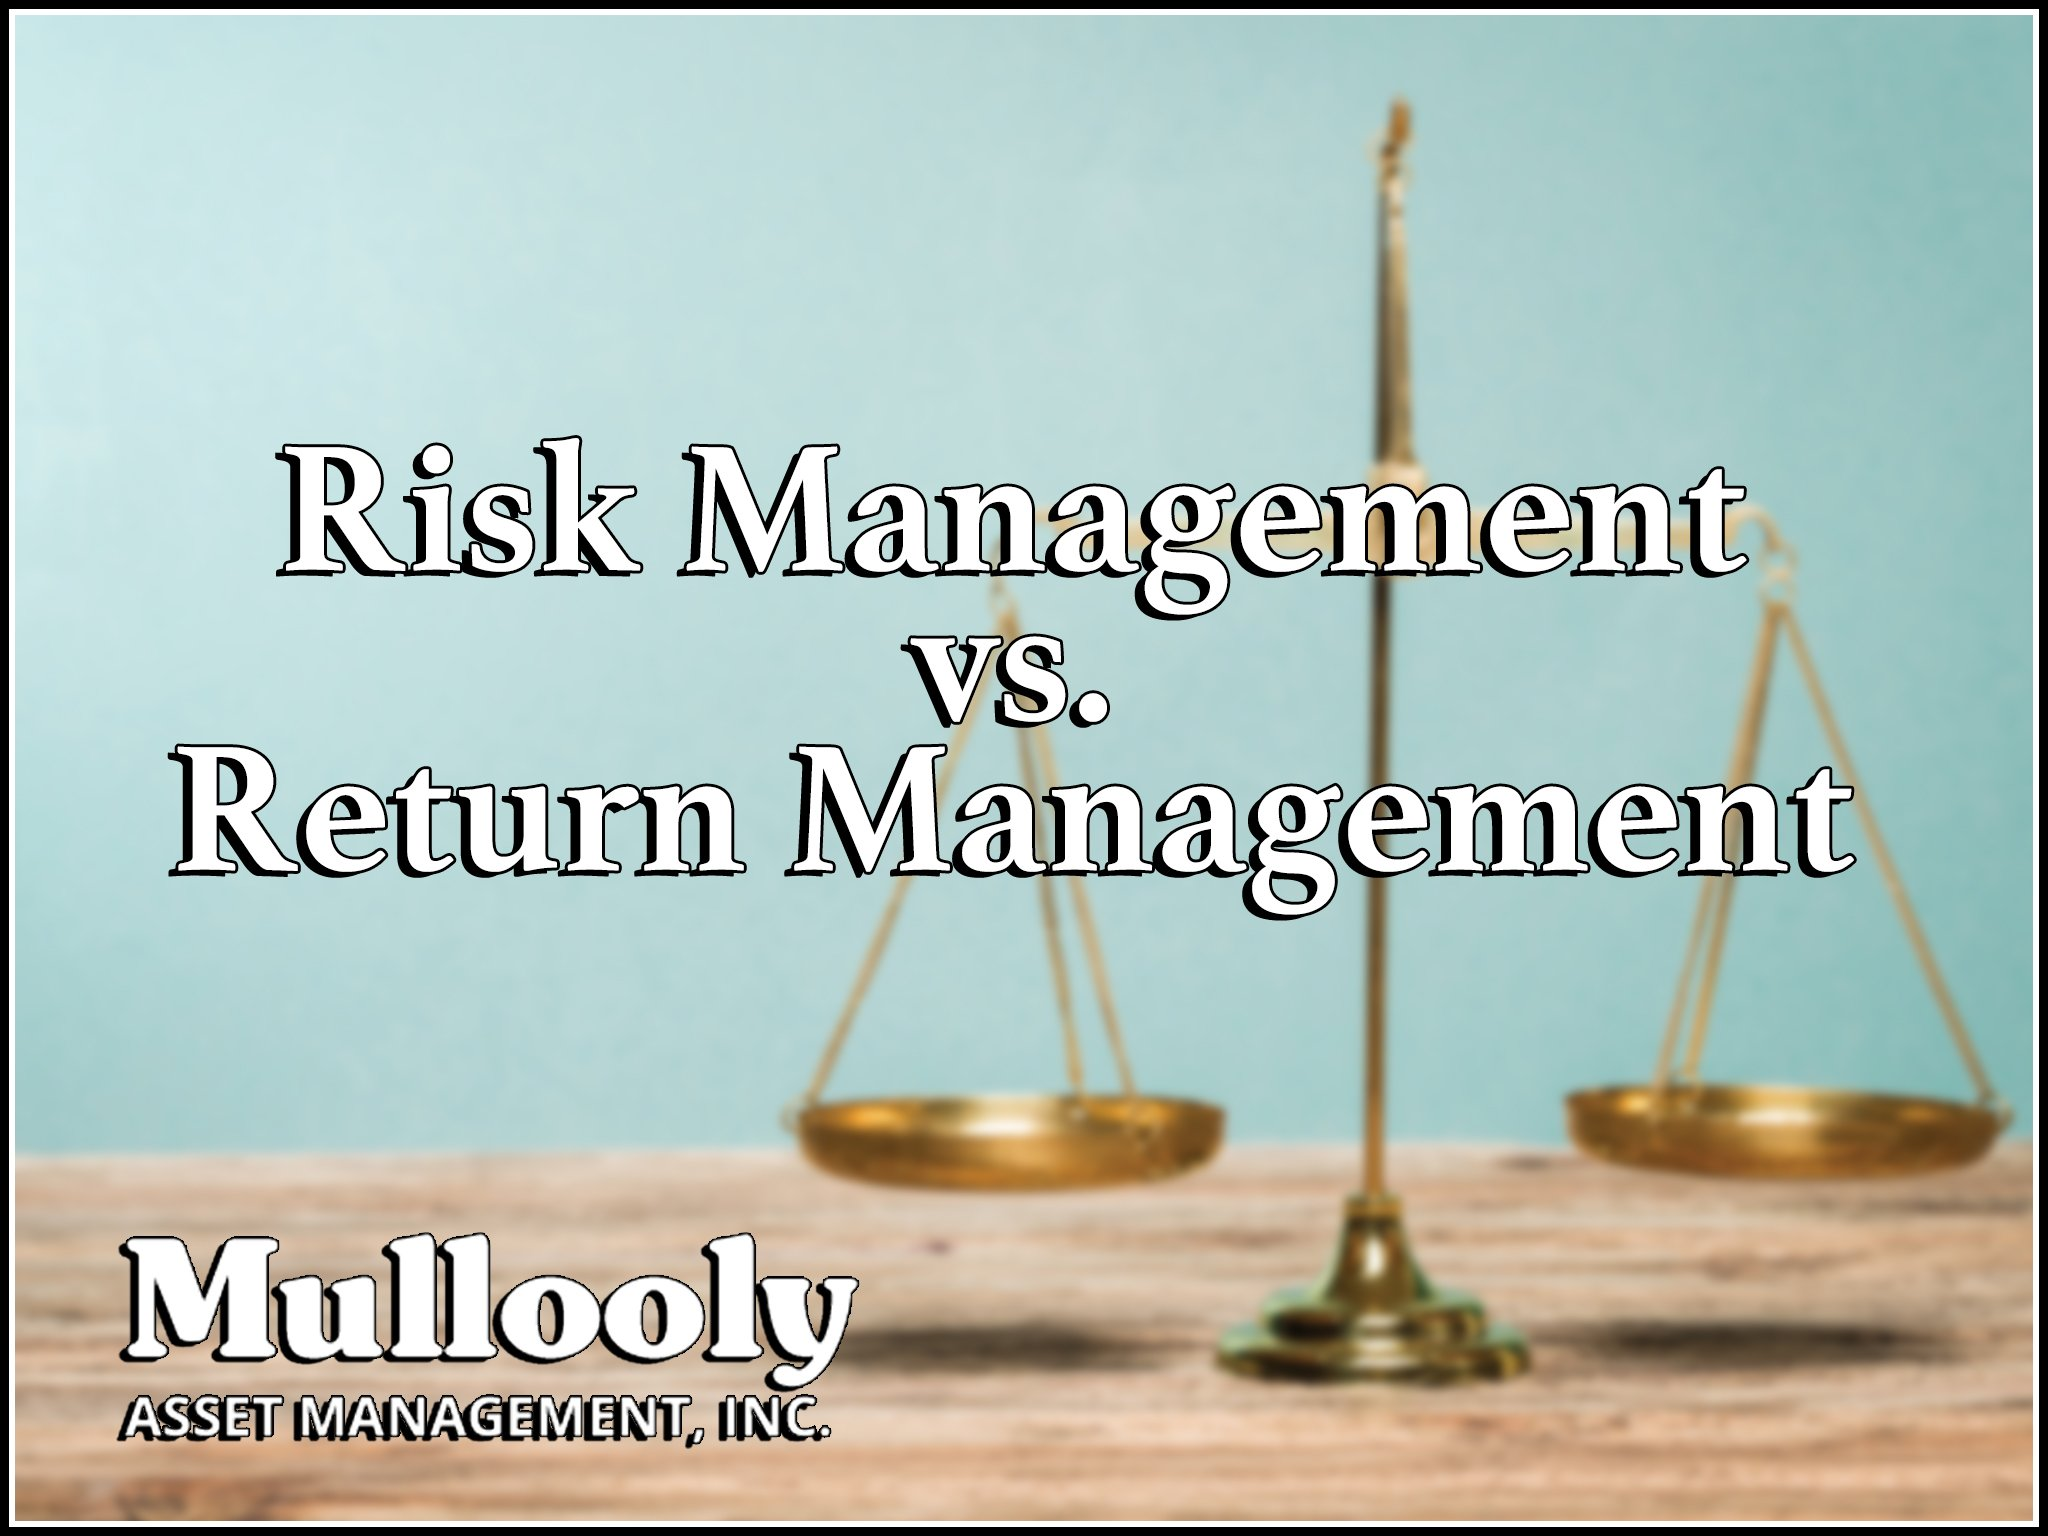 Risk Management vs. Return Management